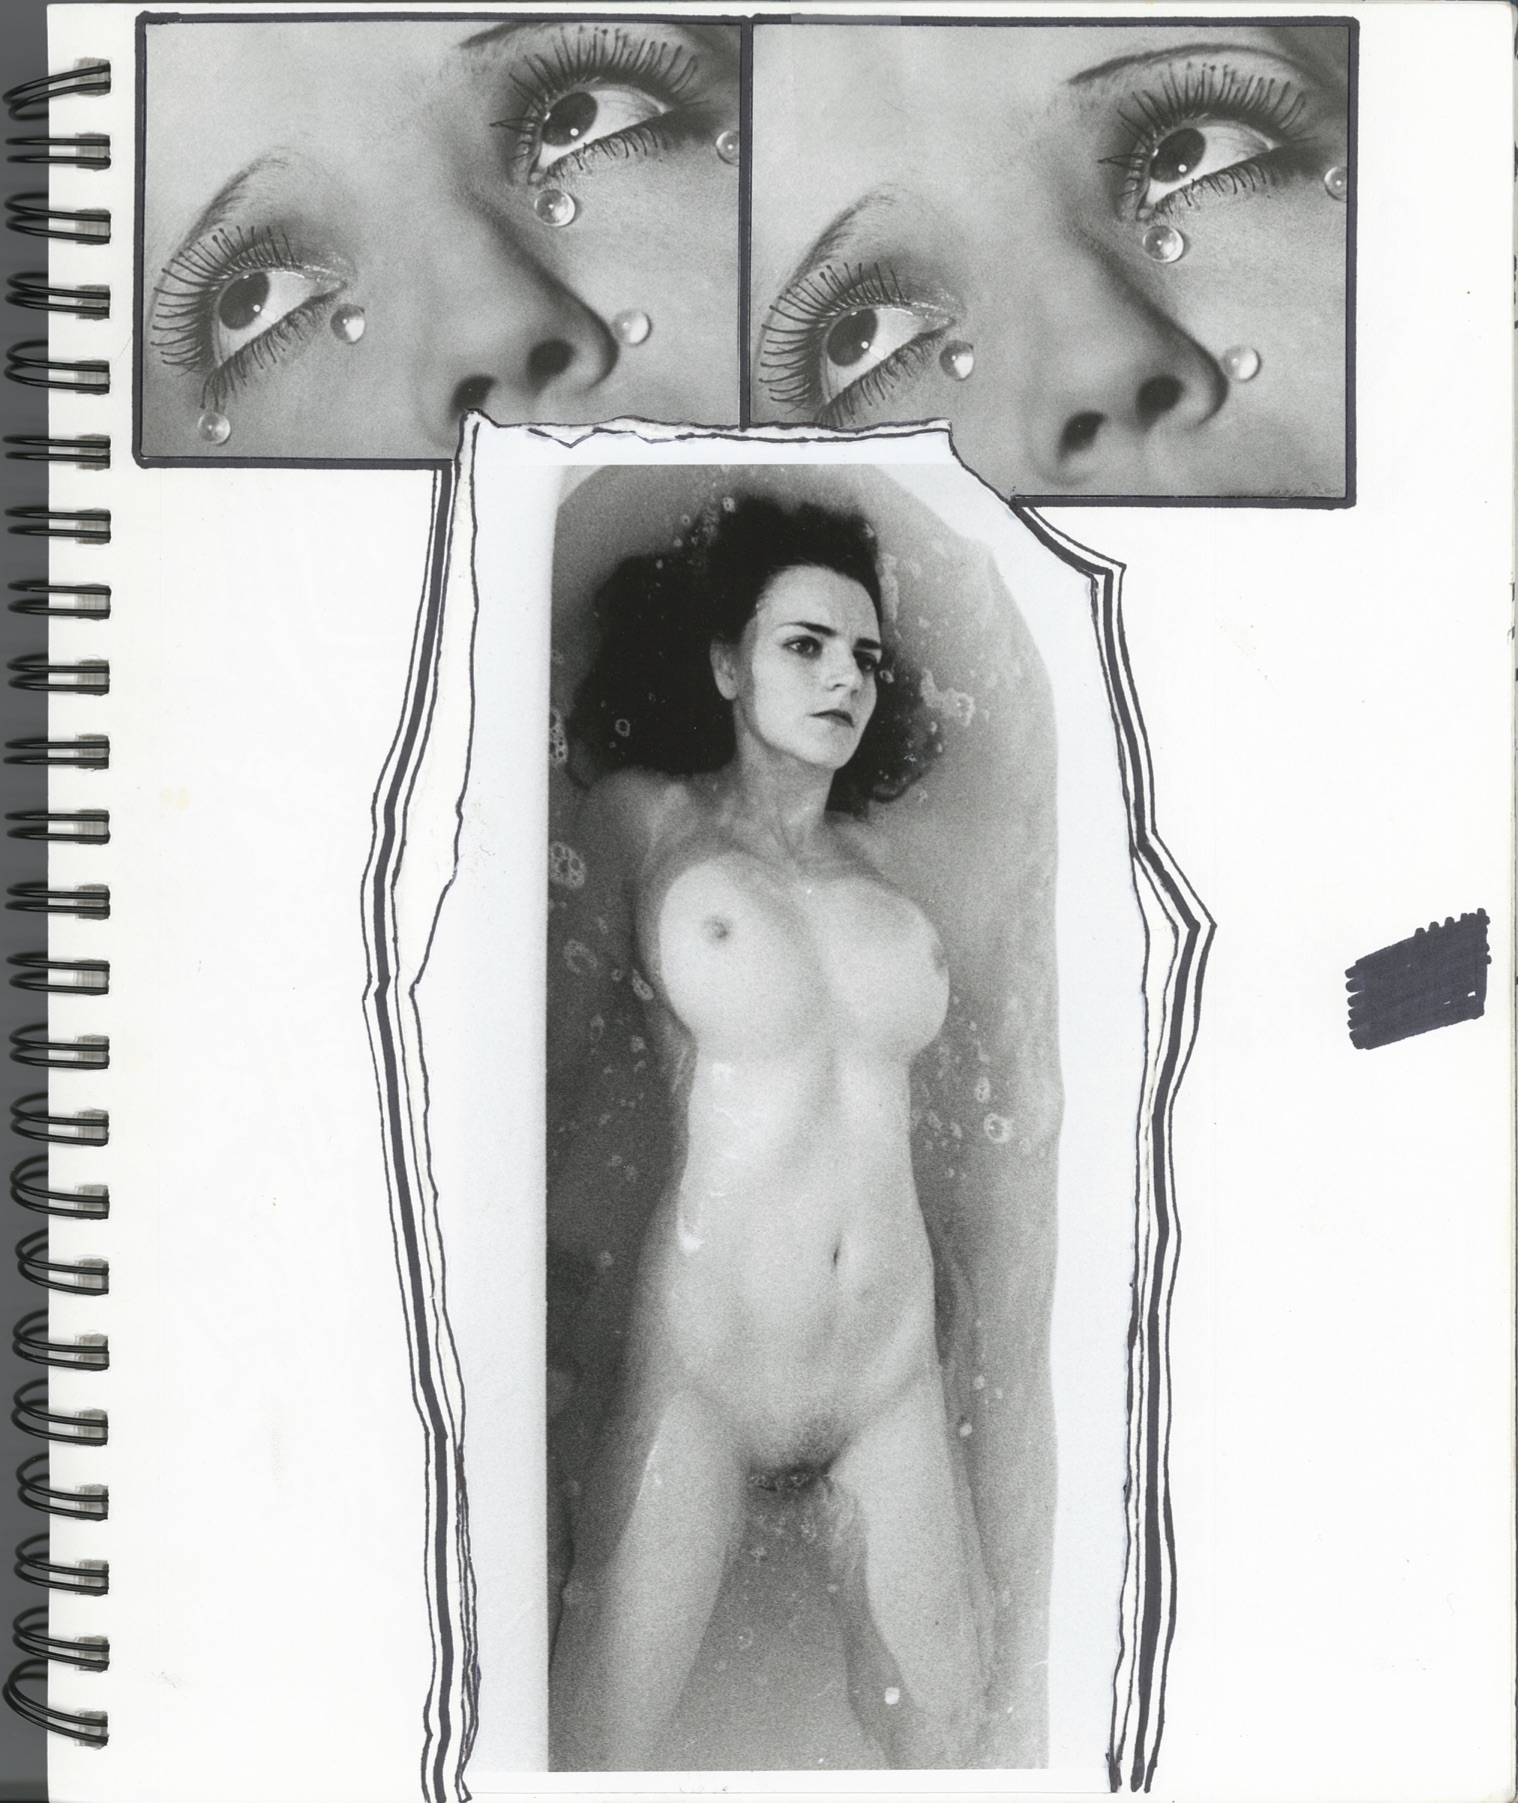 Liv Fontaine, sketchbook page, 2012